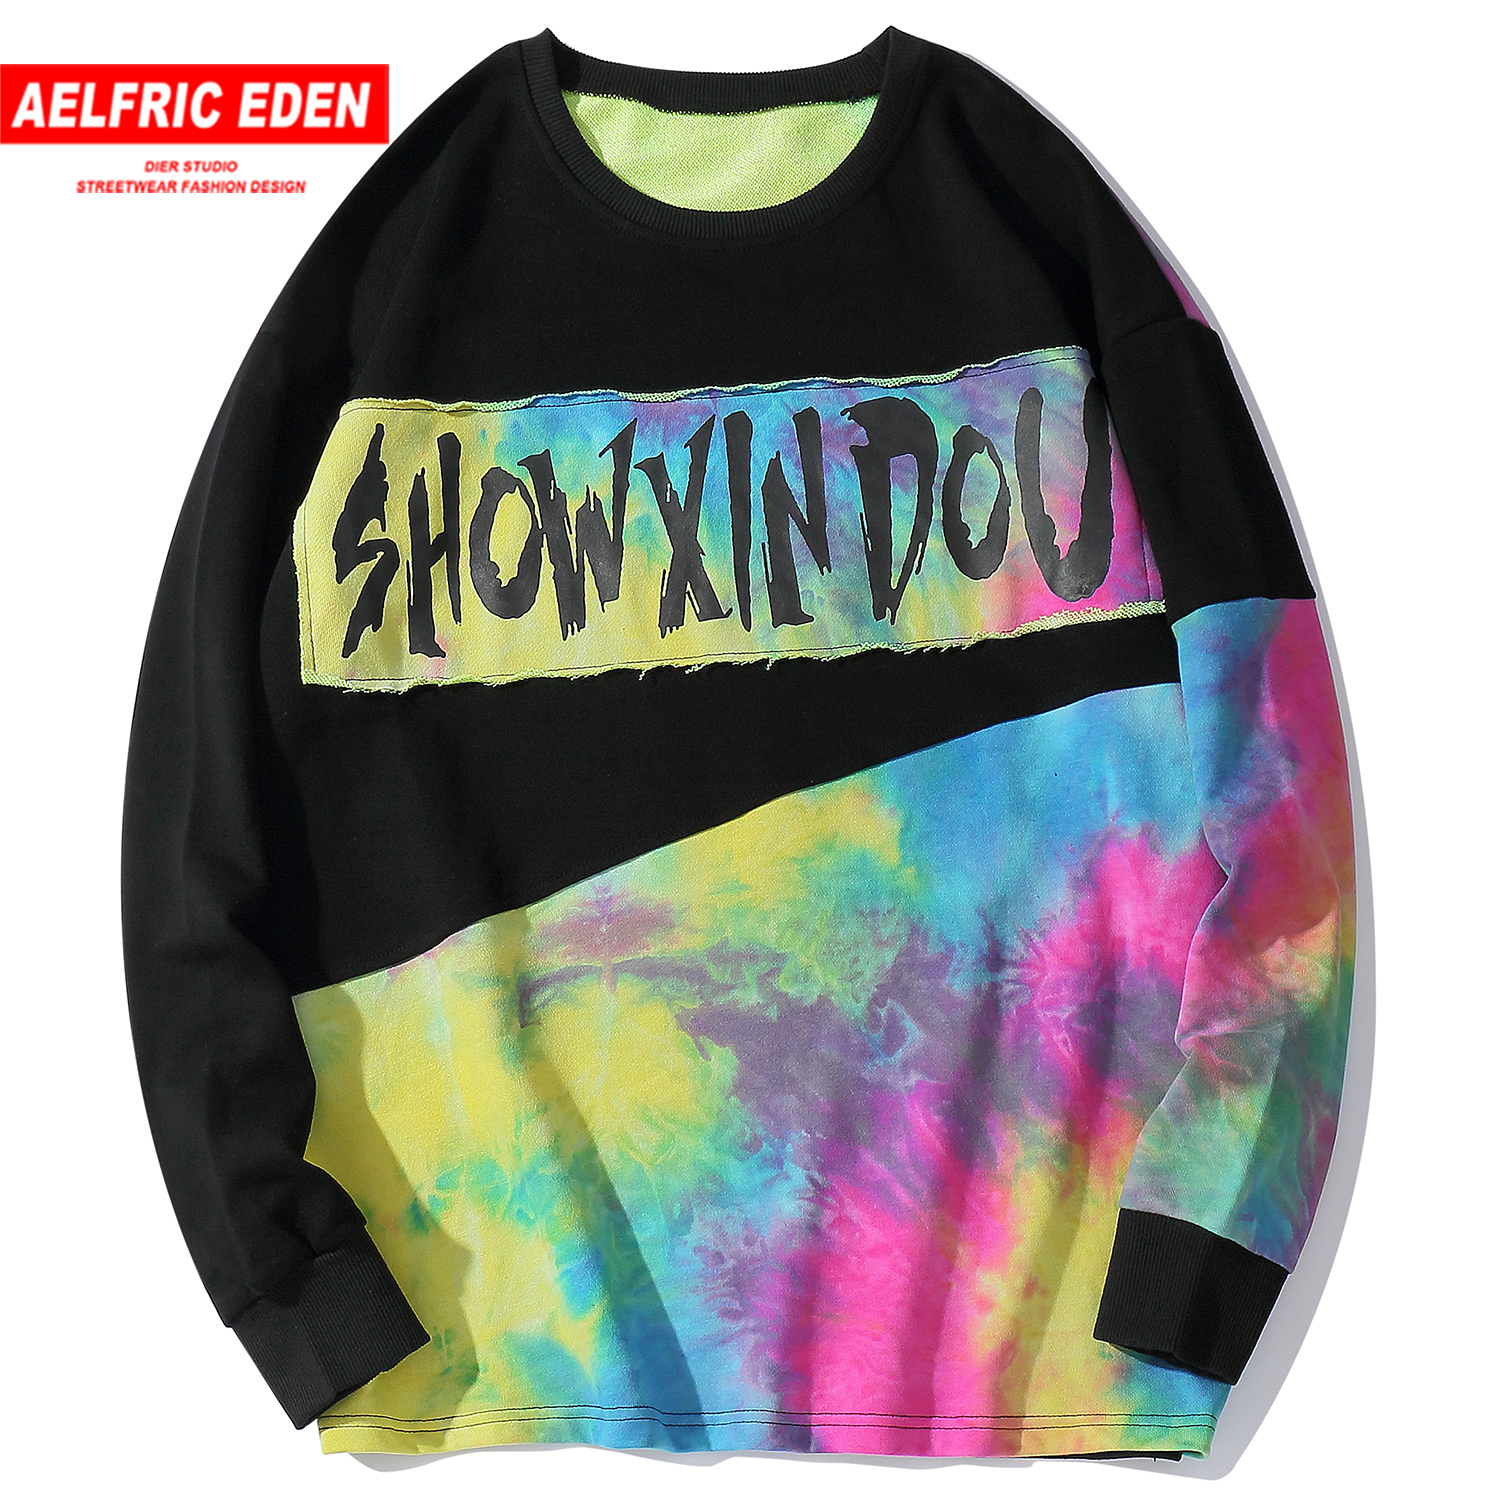 US $28.68 40% OFF|Aelfric Eden Hip Hop Patchwork Color Block Letter Printed Mens Sweatshirts 2019 Harajuku Tops Casual Cotton Pullover Streetwear on